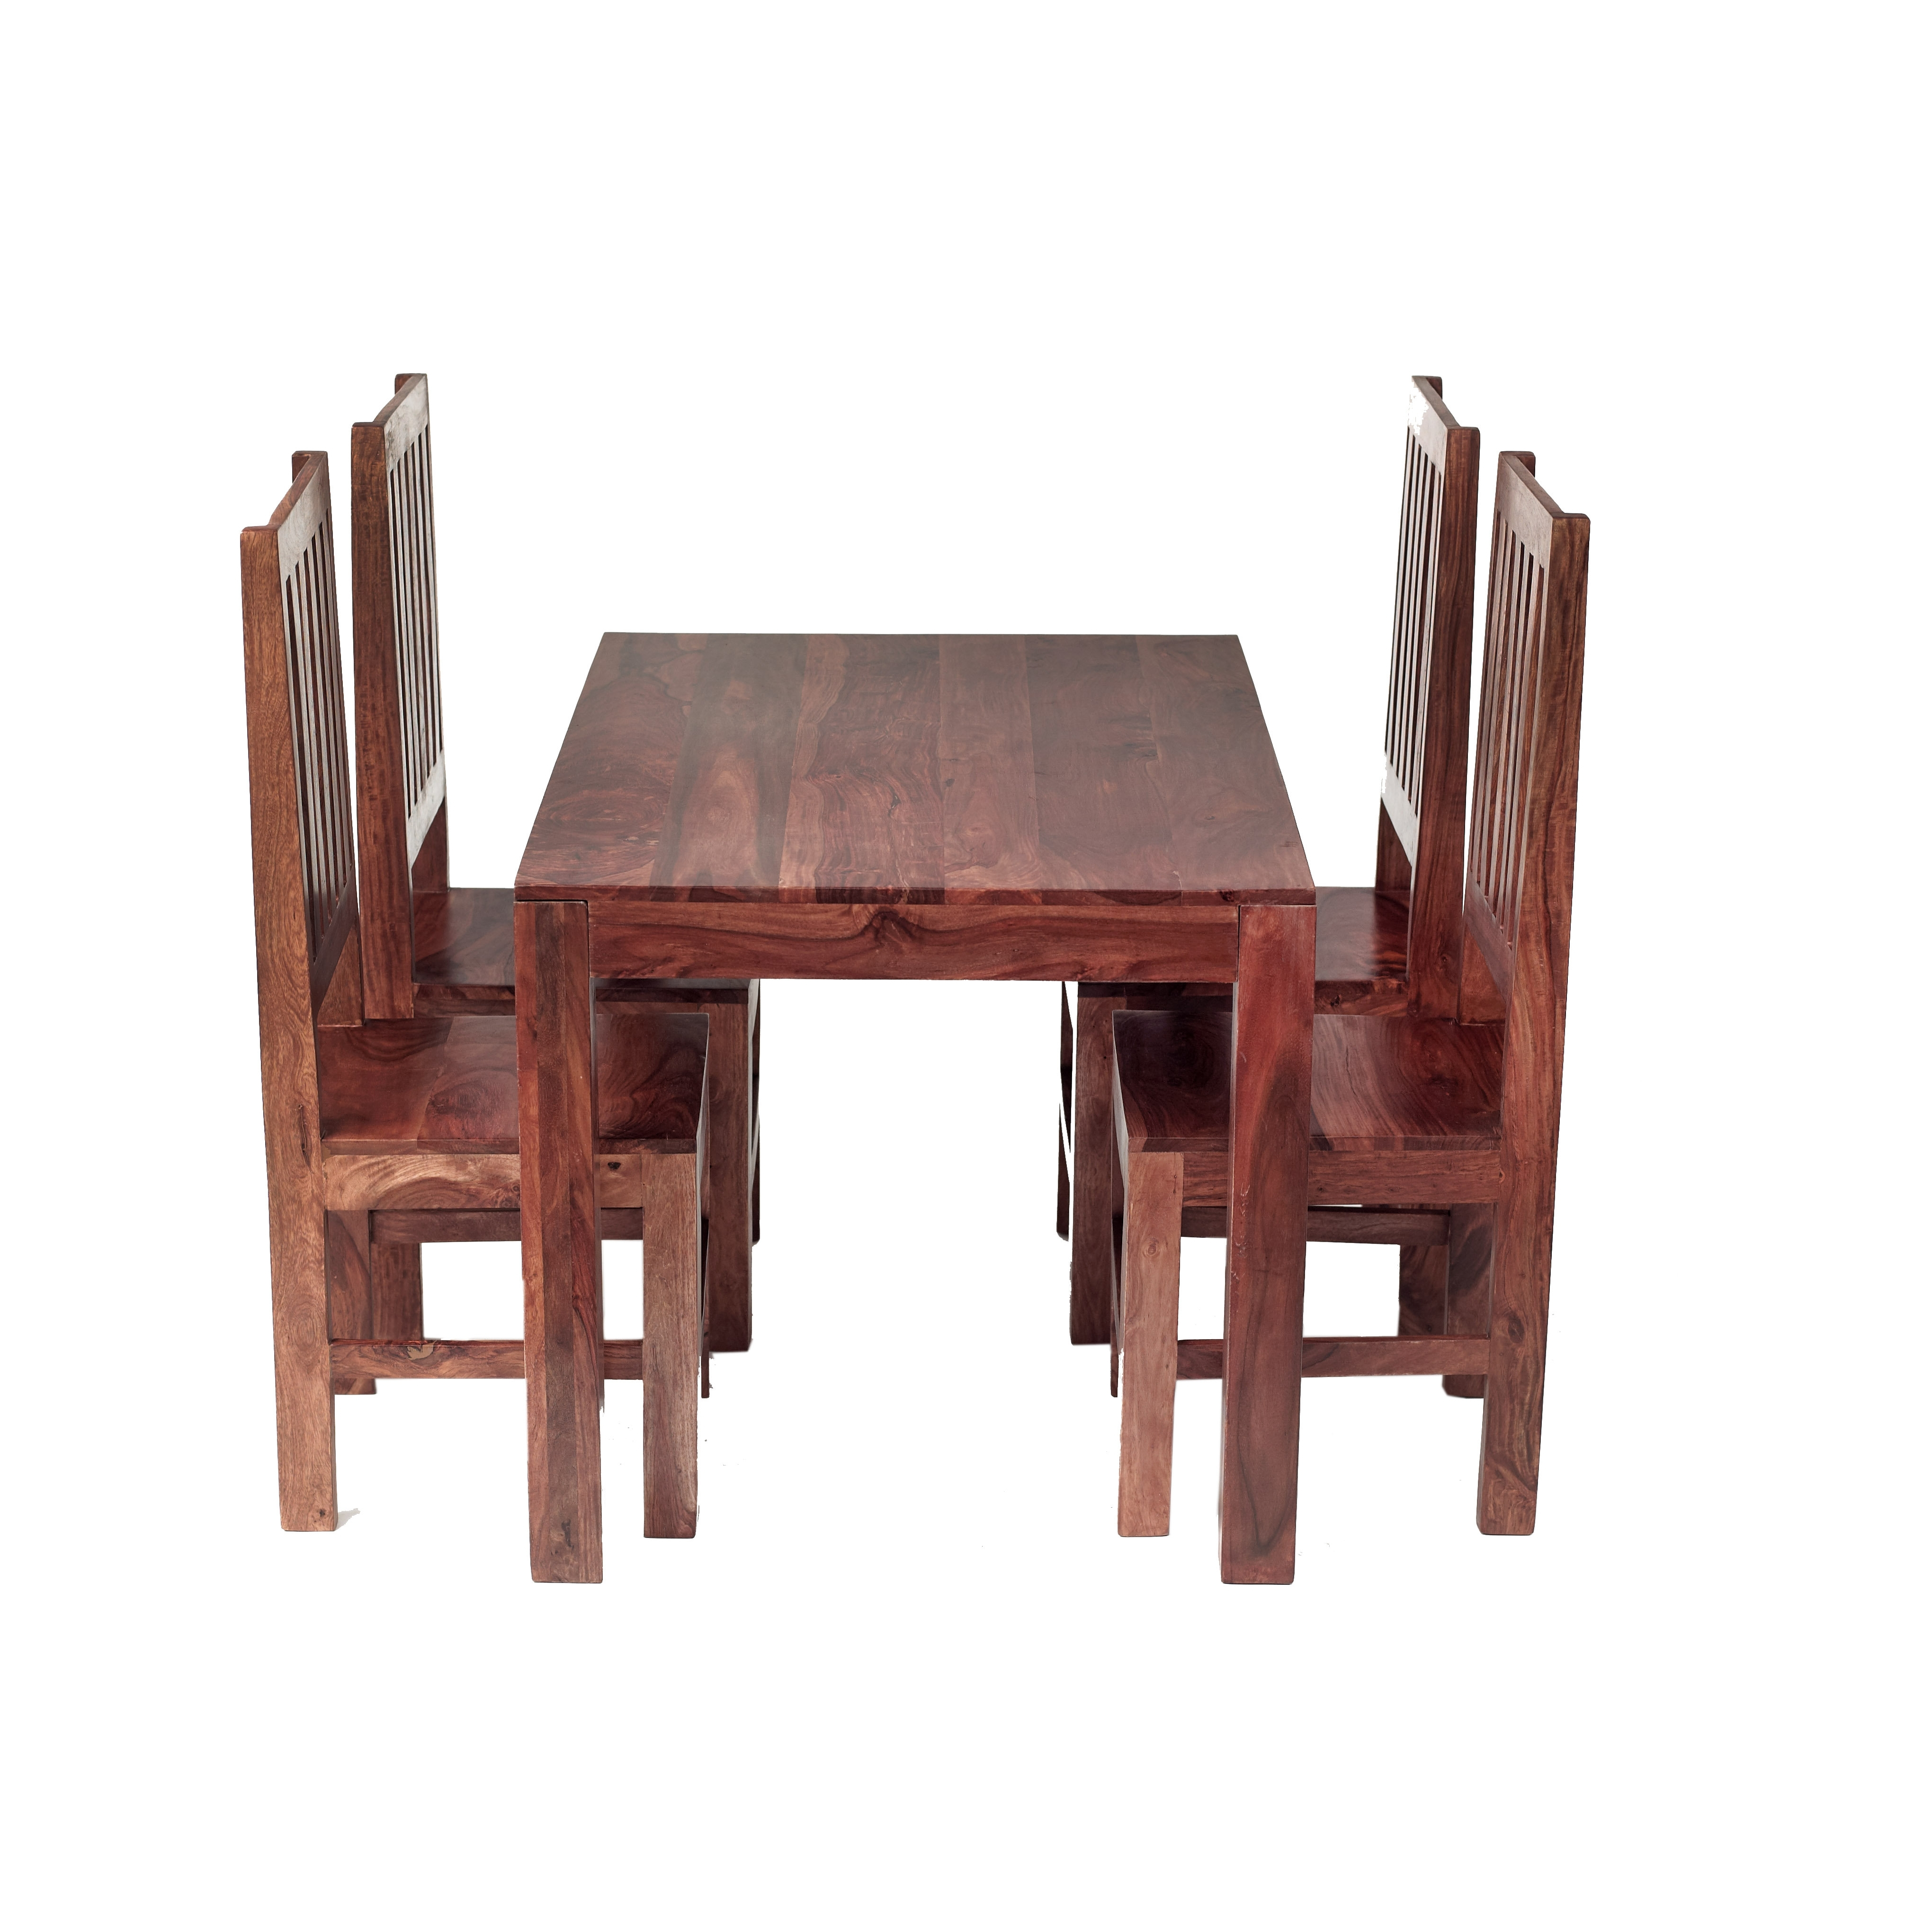 Widely Used Prestington Cube Sheesham Dining Table And 4 Chairs & Reviews Within Sheesham Dining Tables And Chairs (View 24 of 25)